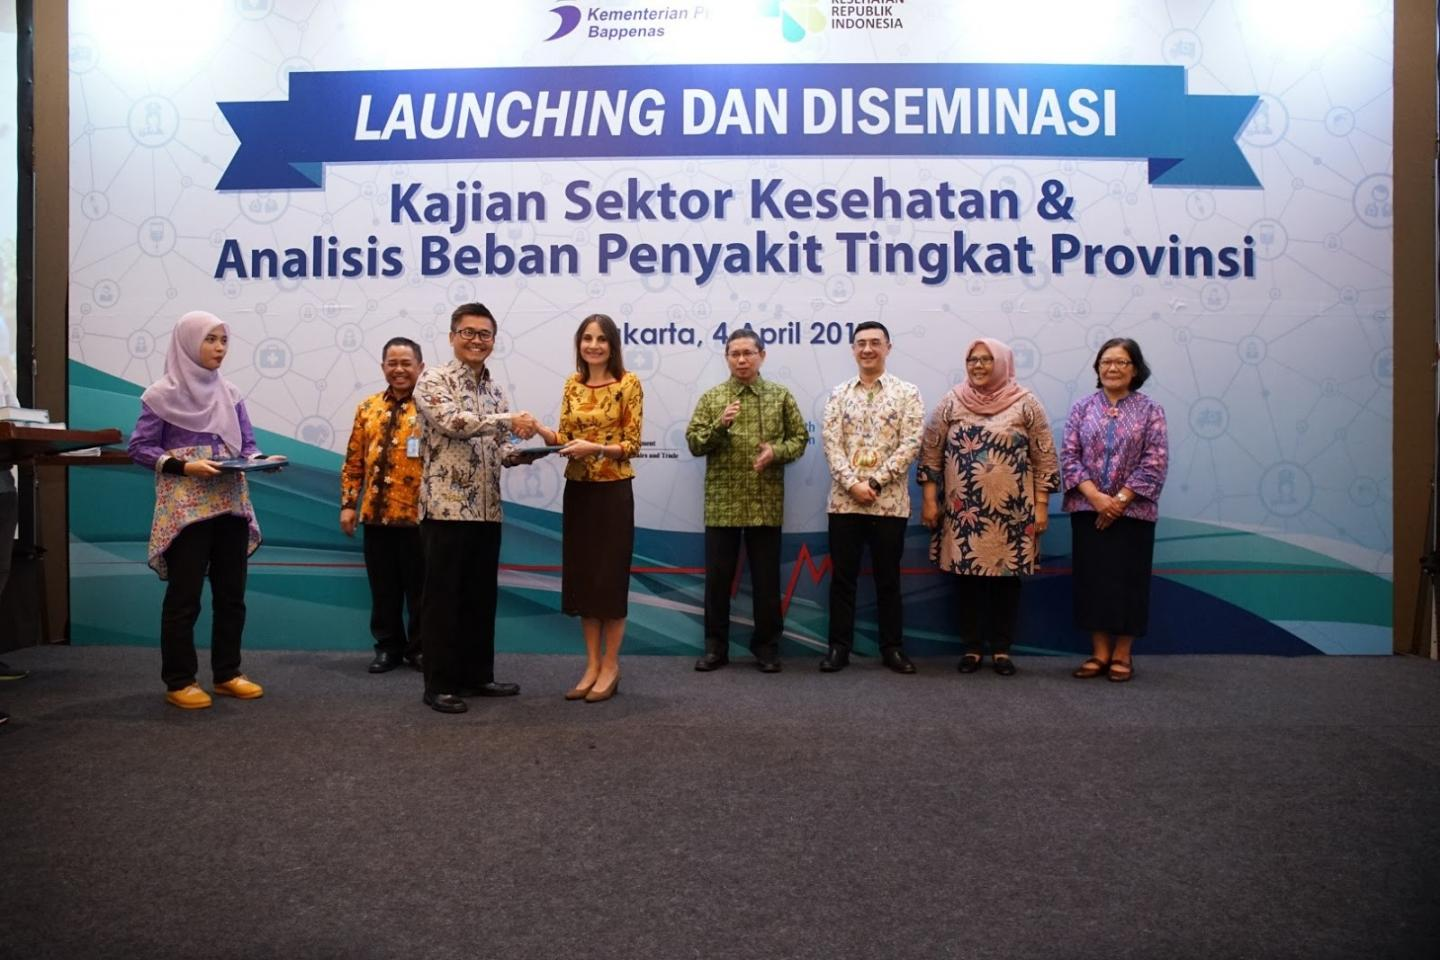 Handover Ceremony of the 2018 Health Sector Review, from Mr. Subandi, Deputy of Human Development and Social Culture and Bappenas and Ms. Debora Comini, Country Representative of UNICEF – Indonesia, 4th April 2019.